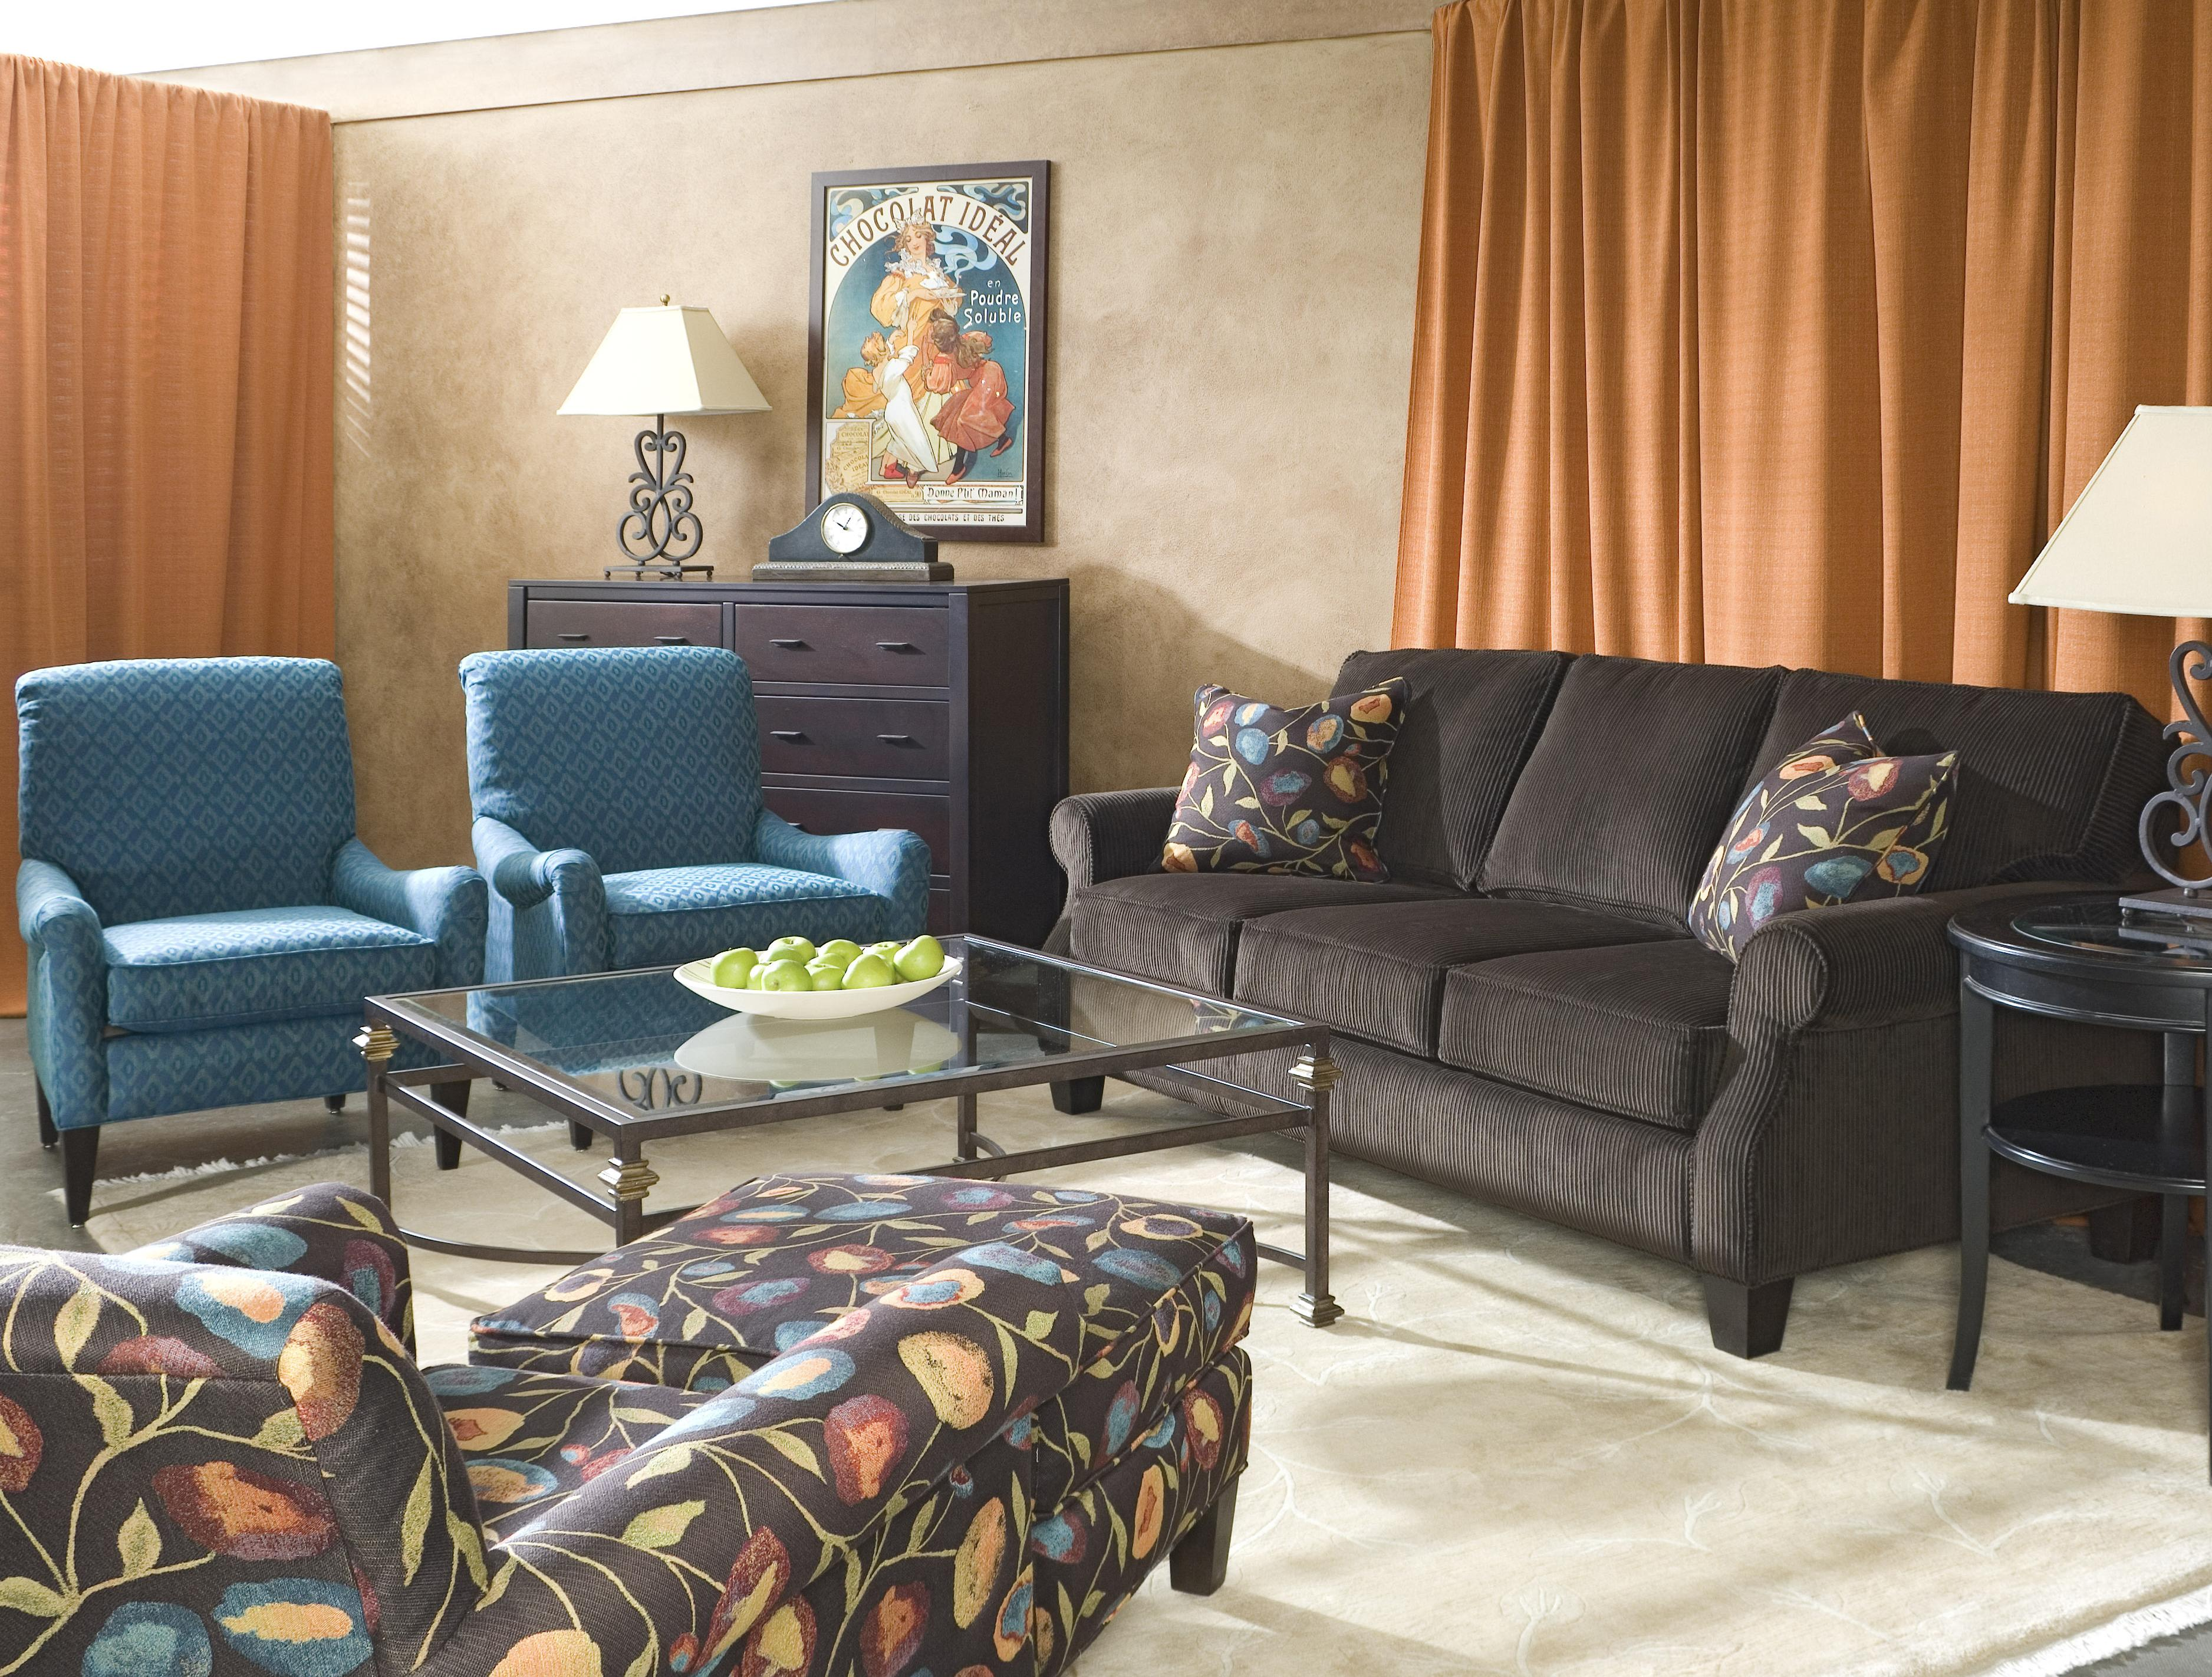 Kimball Bedroom Furniture Rowe Kimball Sofa With Rolled Arms Exposed Wood Legs Belfort